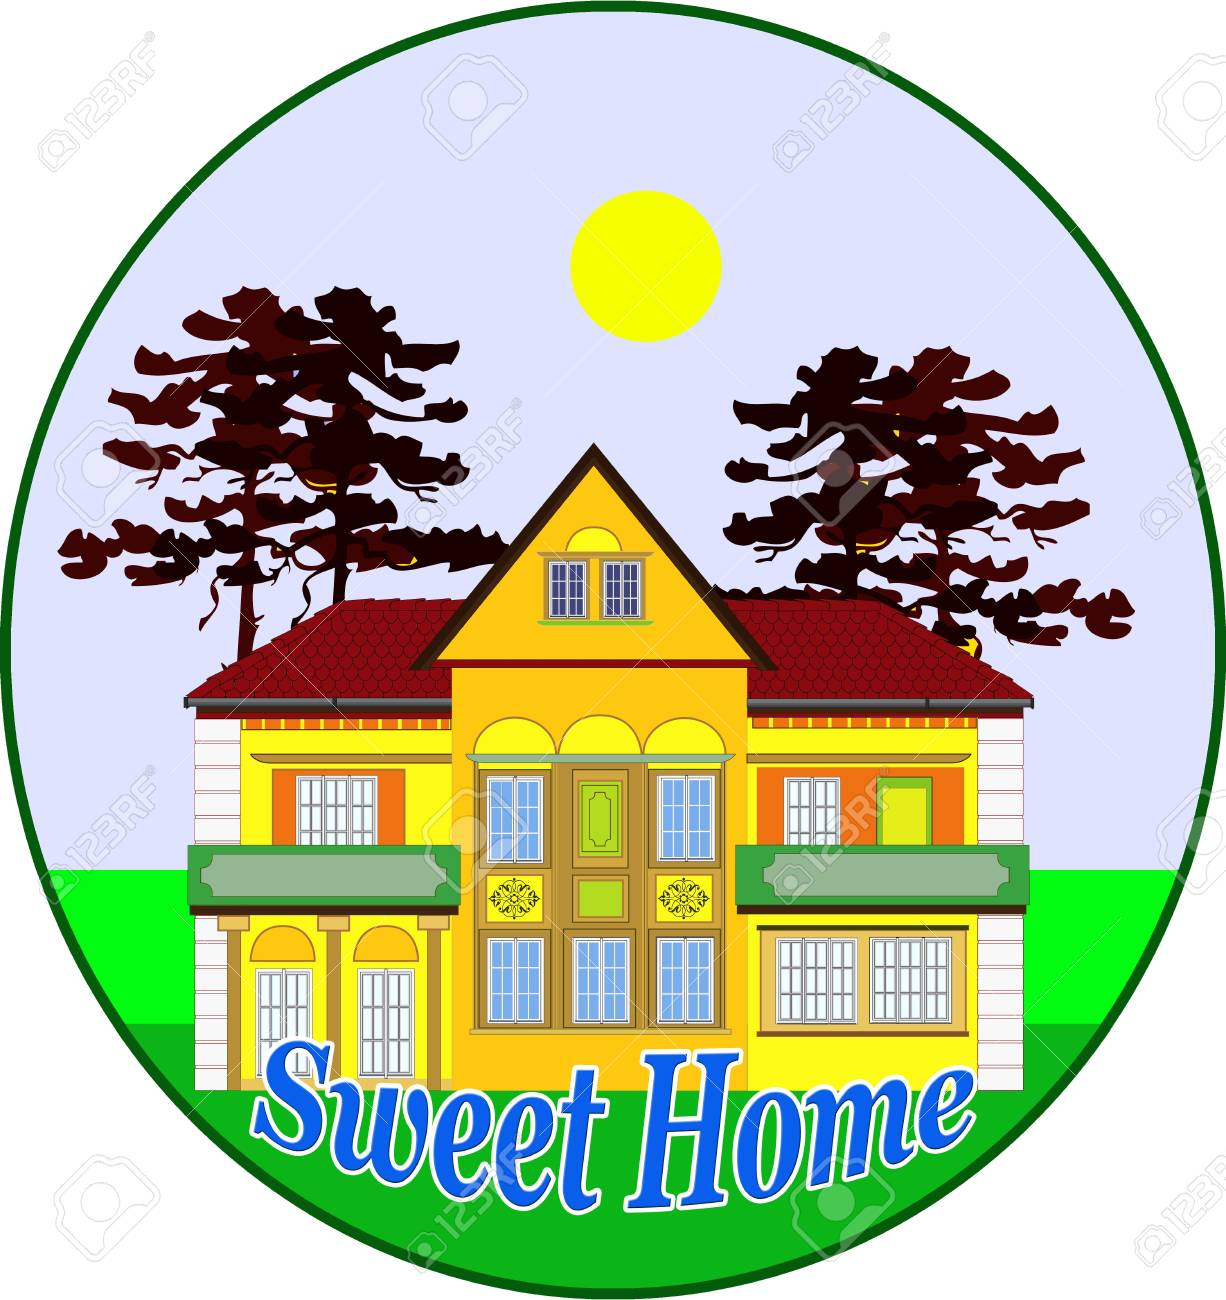 Sweet home. Illustration for the real estate market Stock Photo - 13403414